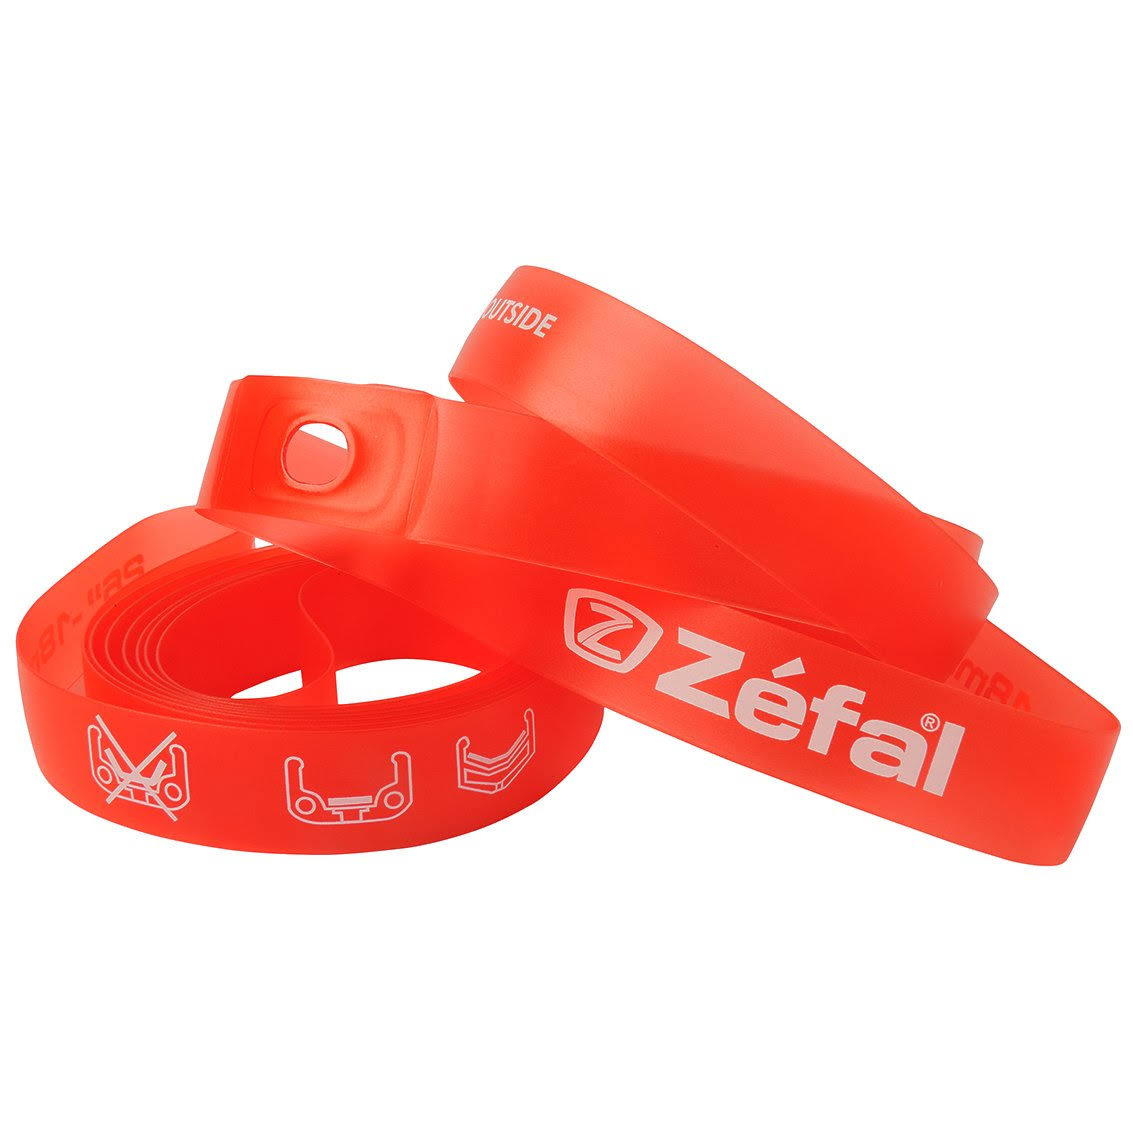 Zefal PVC Rim Tape - Red, 18mm x 26in